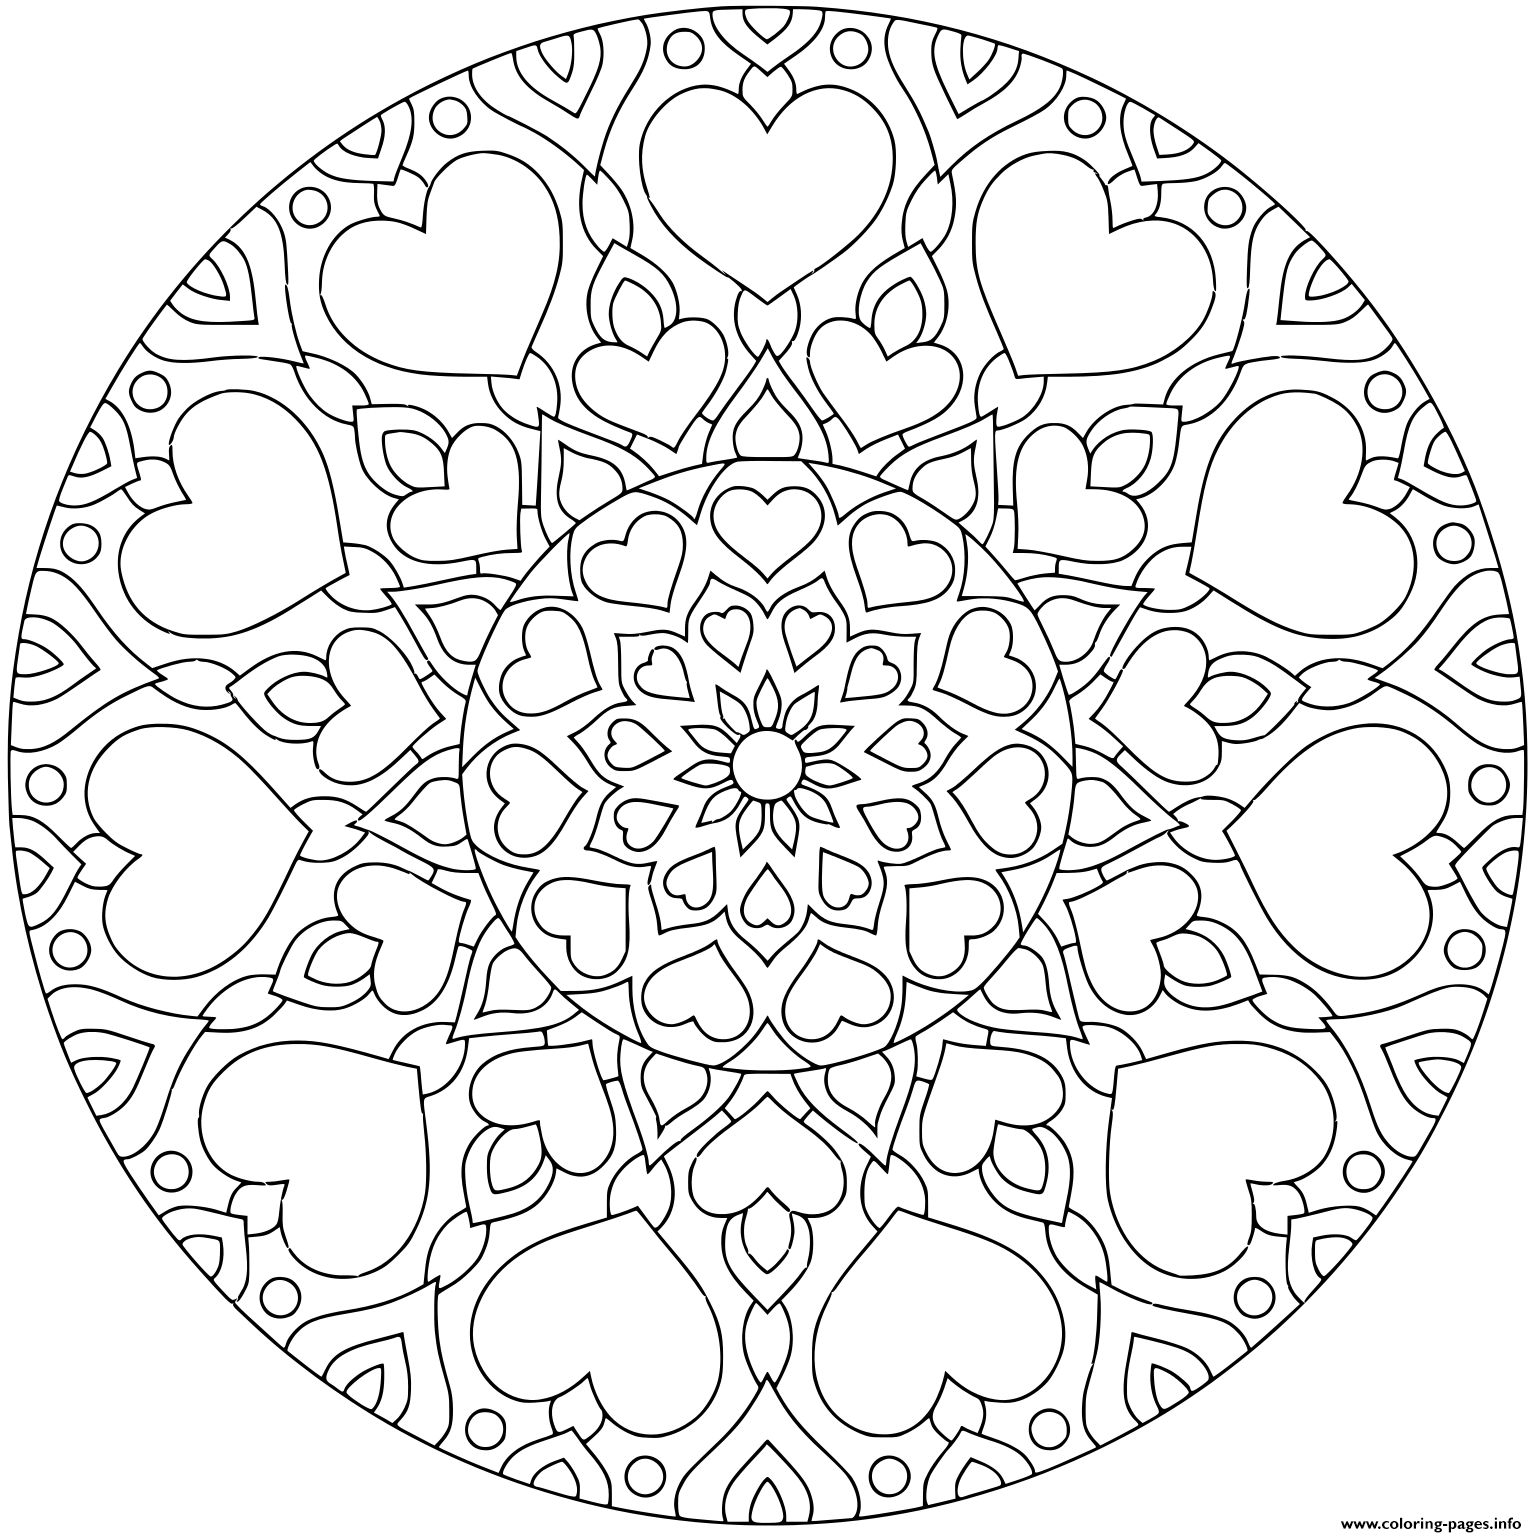 Flower Mandala With Hearts For Valentine S Day coloring pages